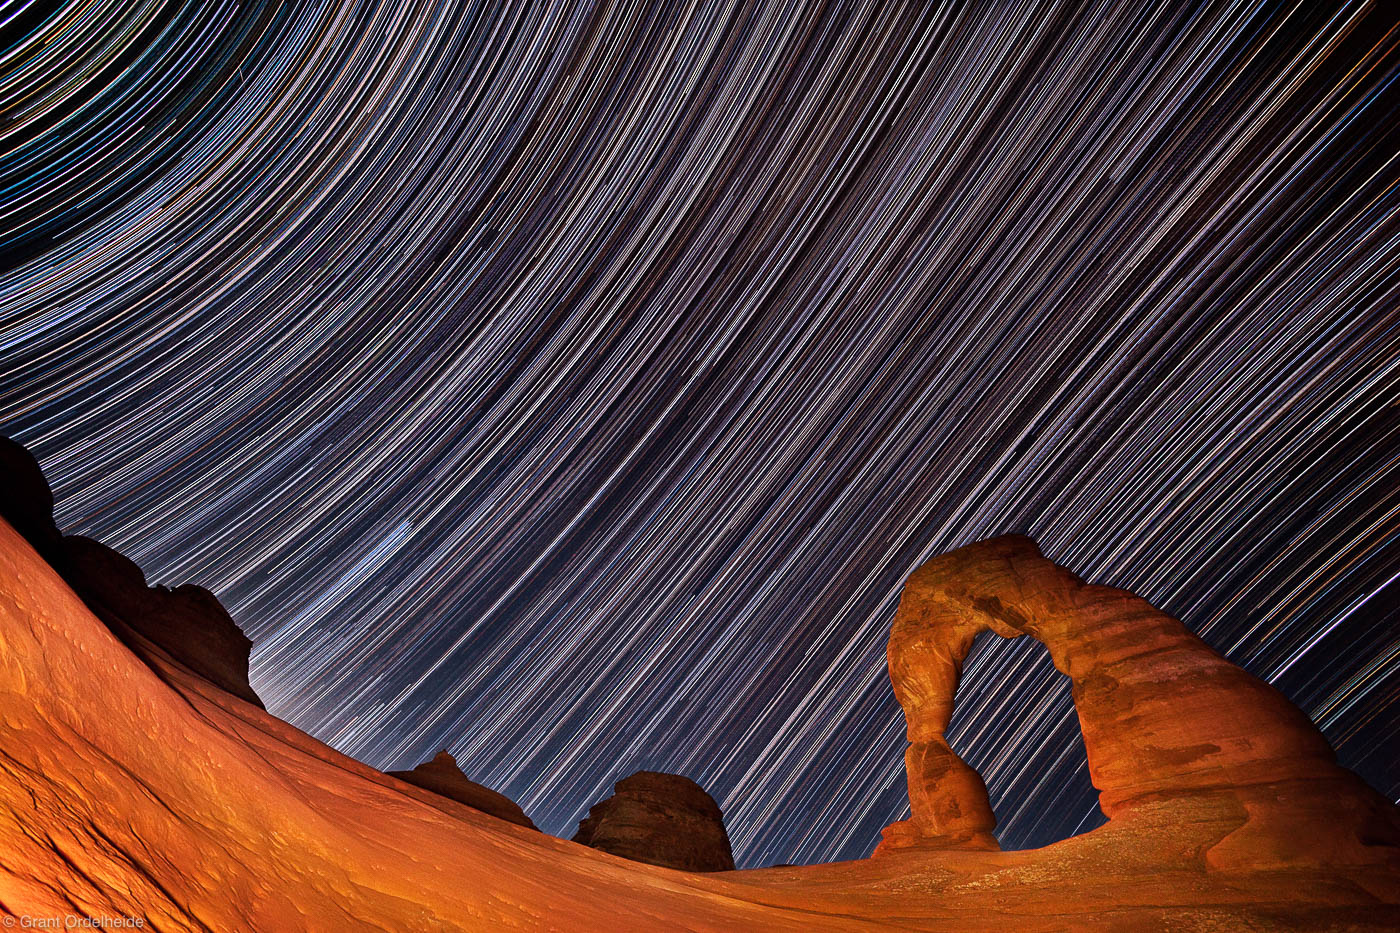 delicate arch, arches national park, moab, utah, stars, sandstone, bowl, composition, steep, patiently, long exposure, s, photo